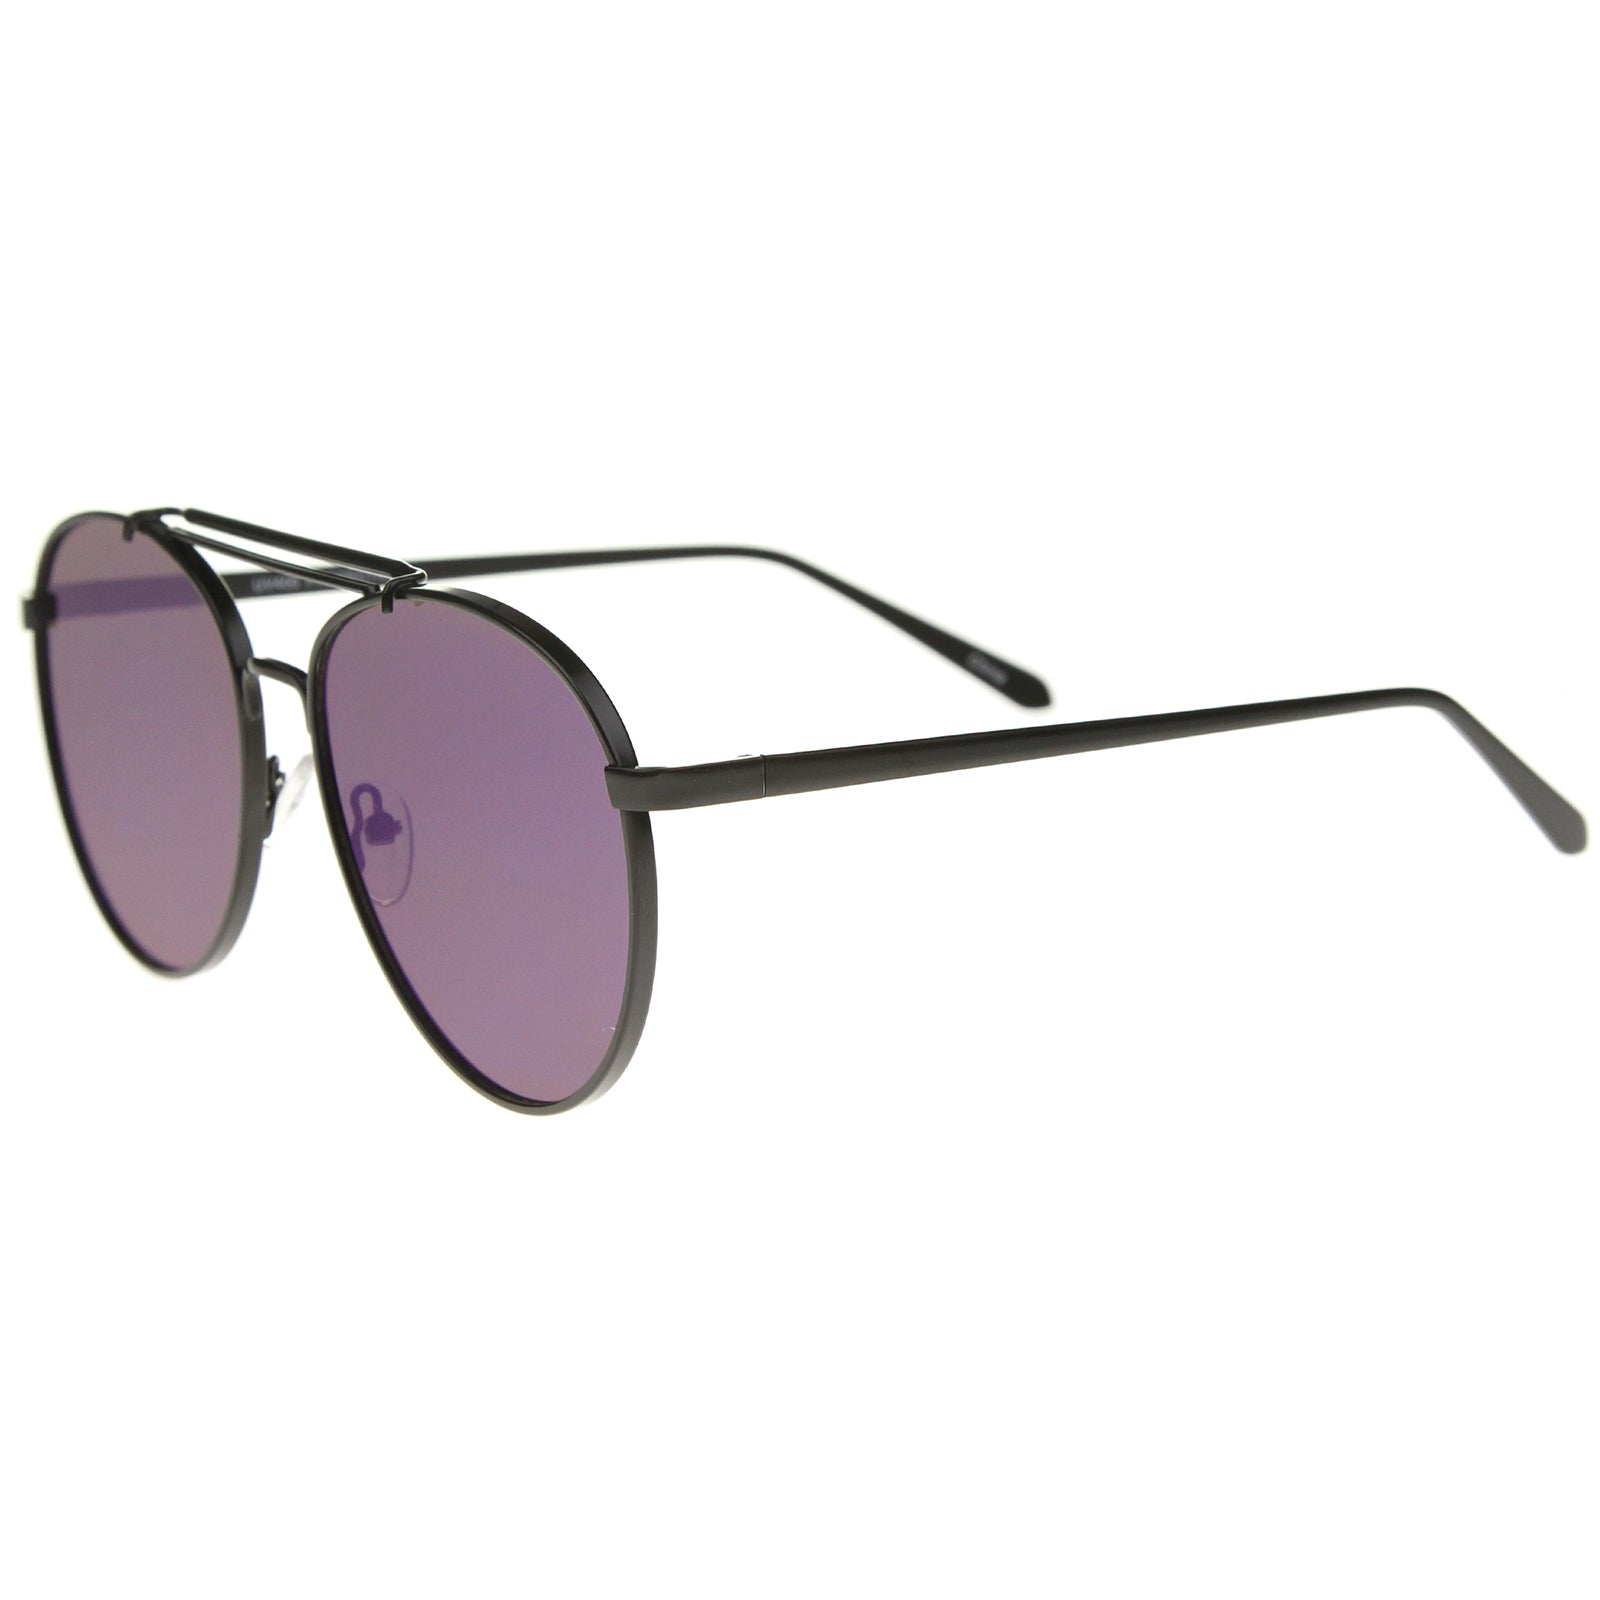 Large Metal Teardrop Double Bridge Mirrored Flat Lens Aviator Sunglasses 60mm - sunglass.la - 11